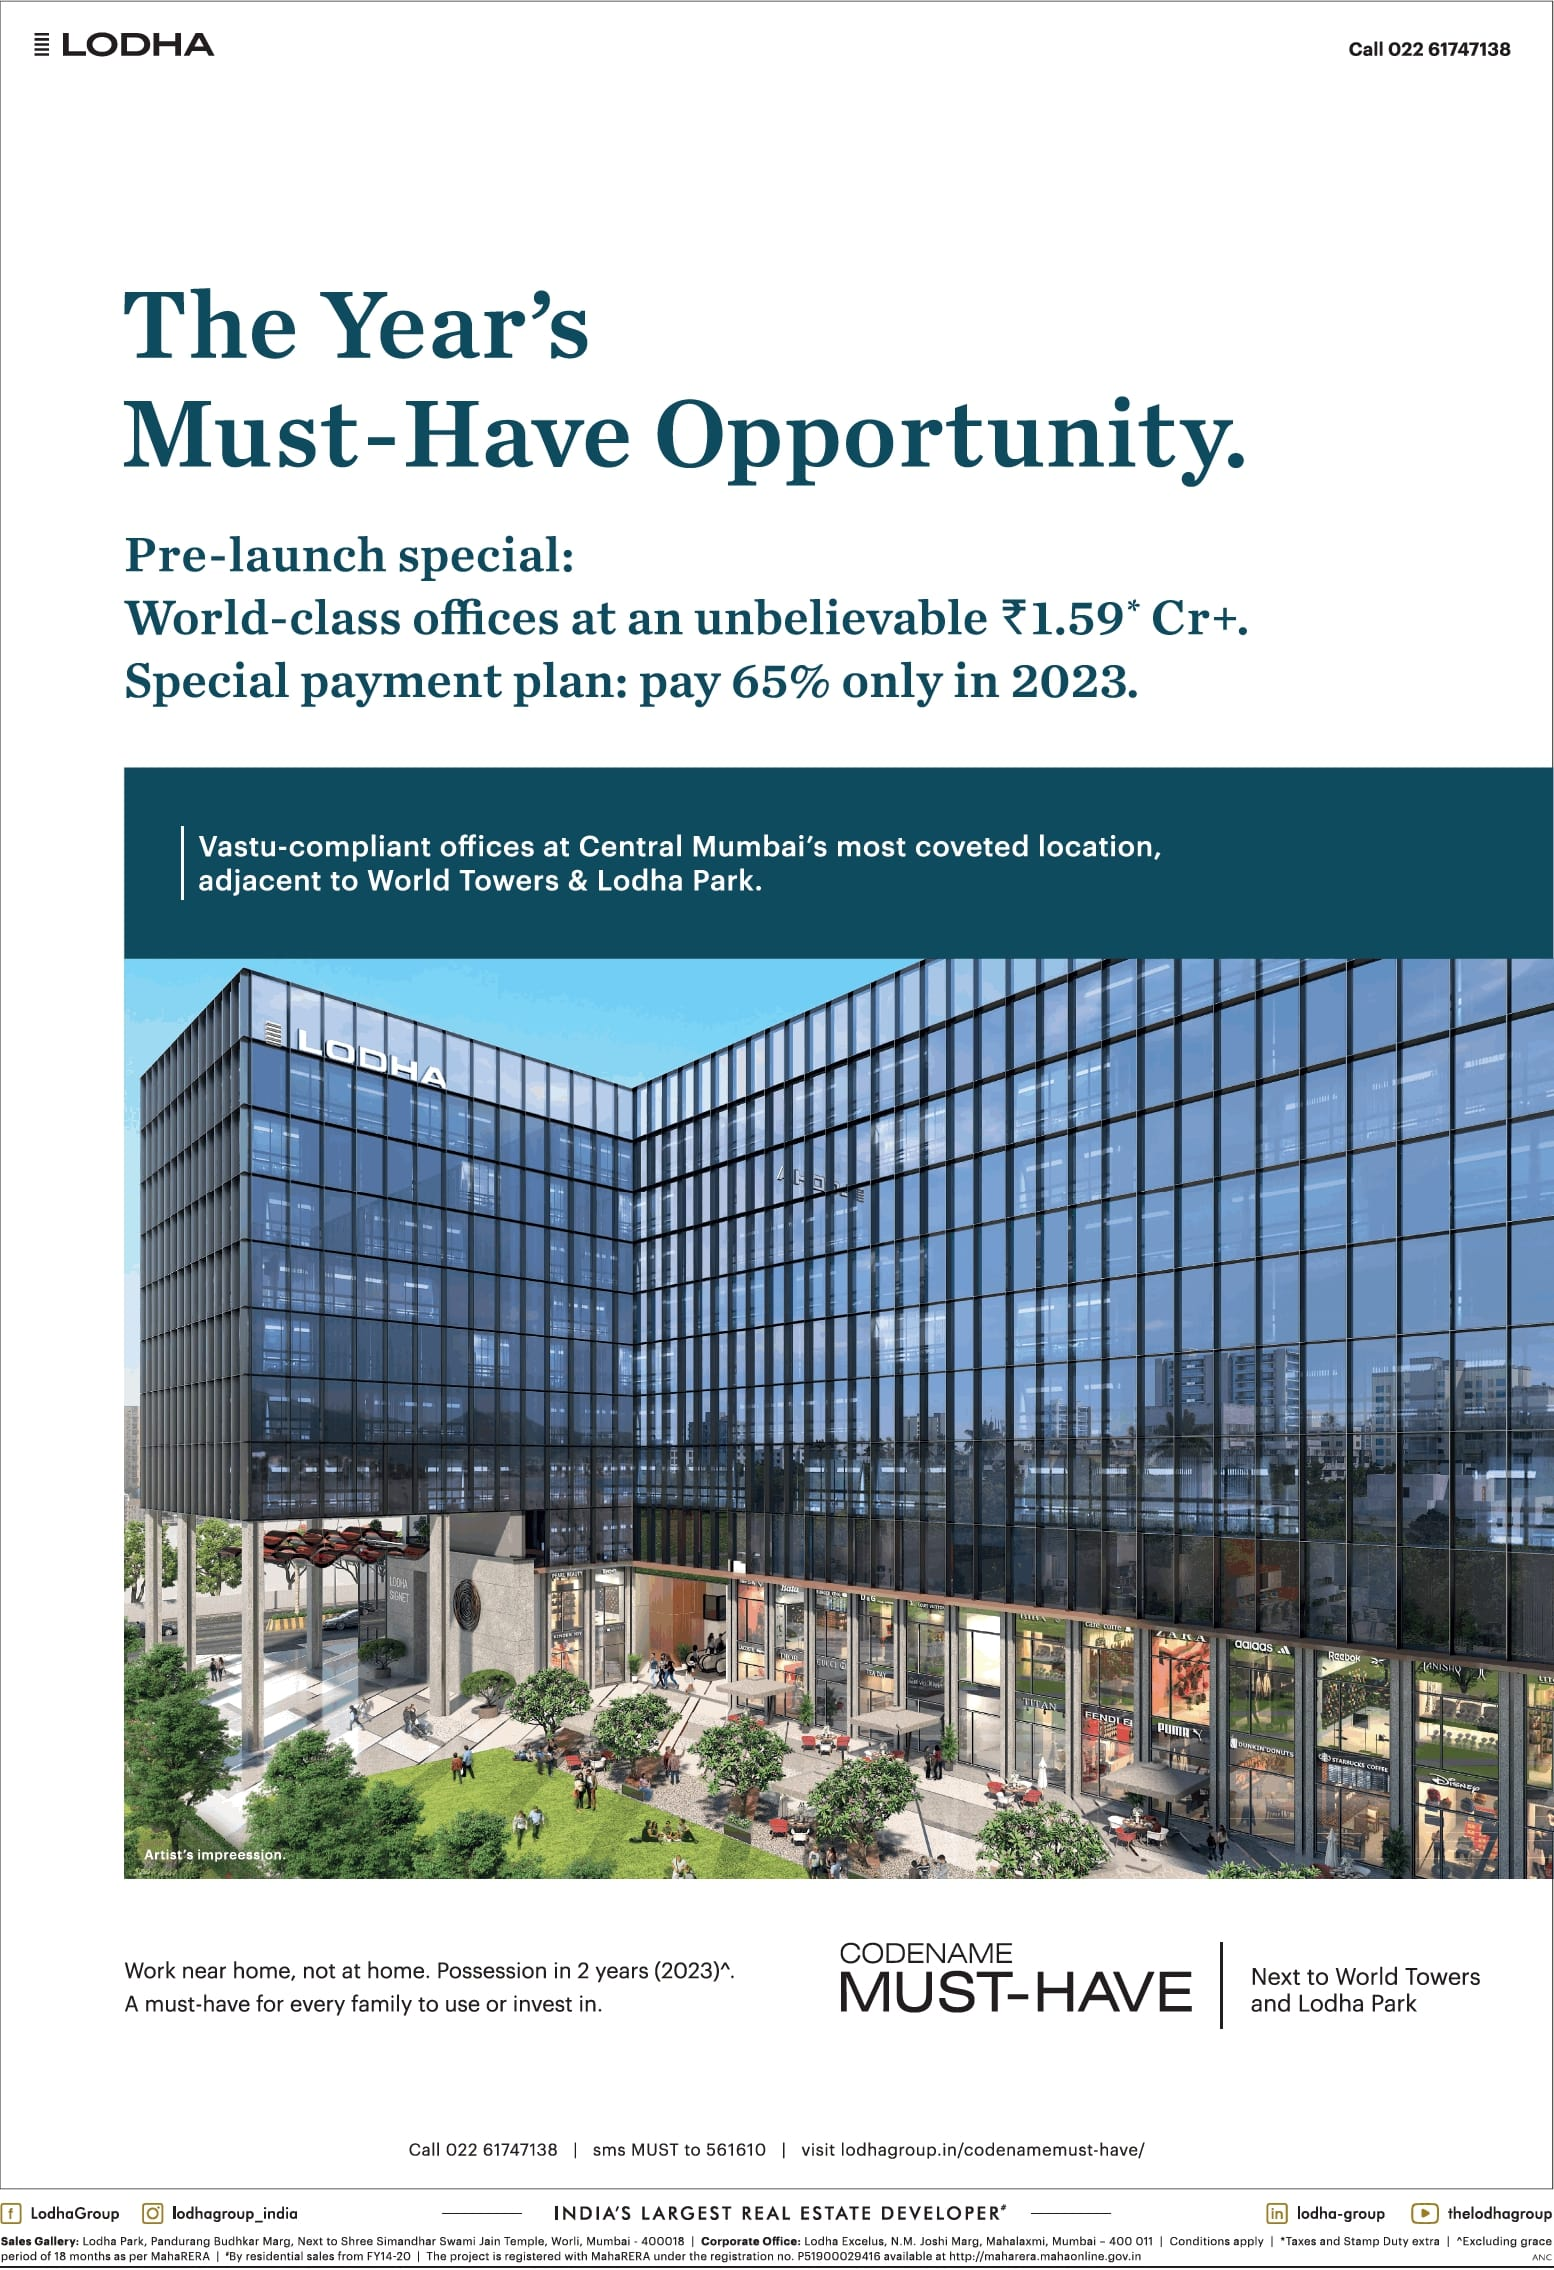 lodha-the-years-must-have-opportunity-ad-times-of-india-mumbai-04-06-2021